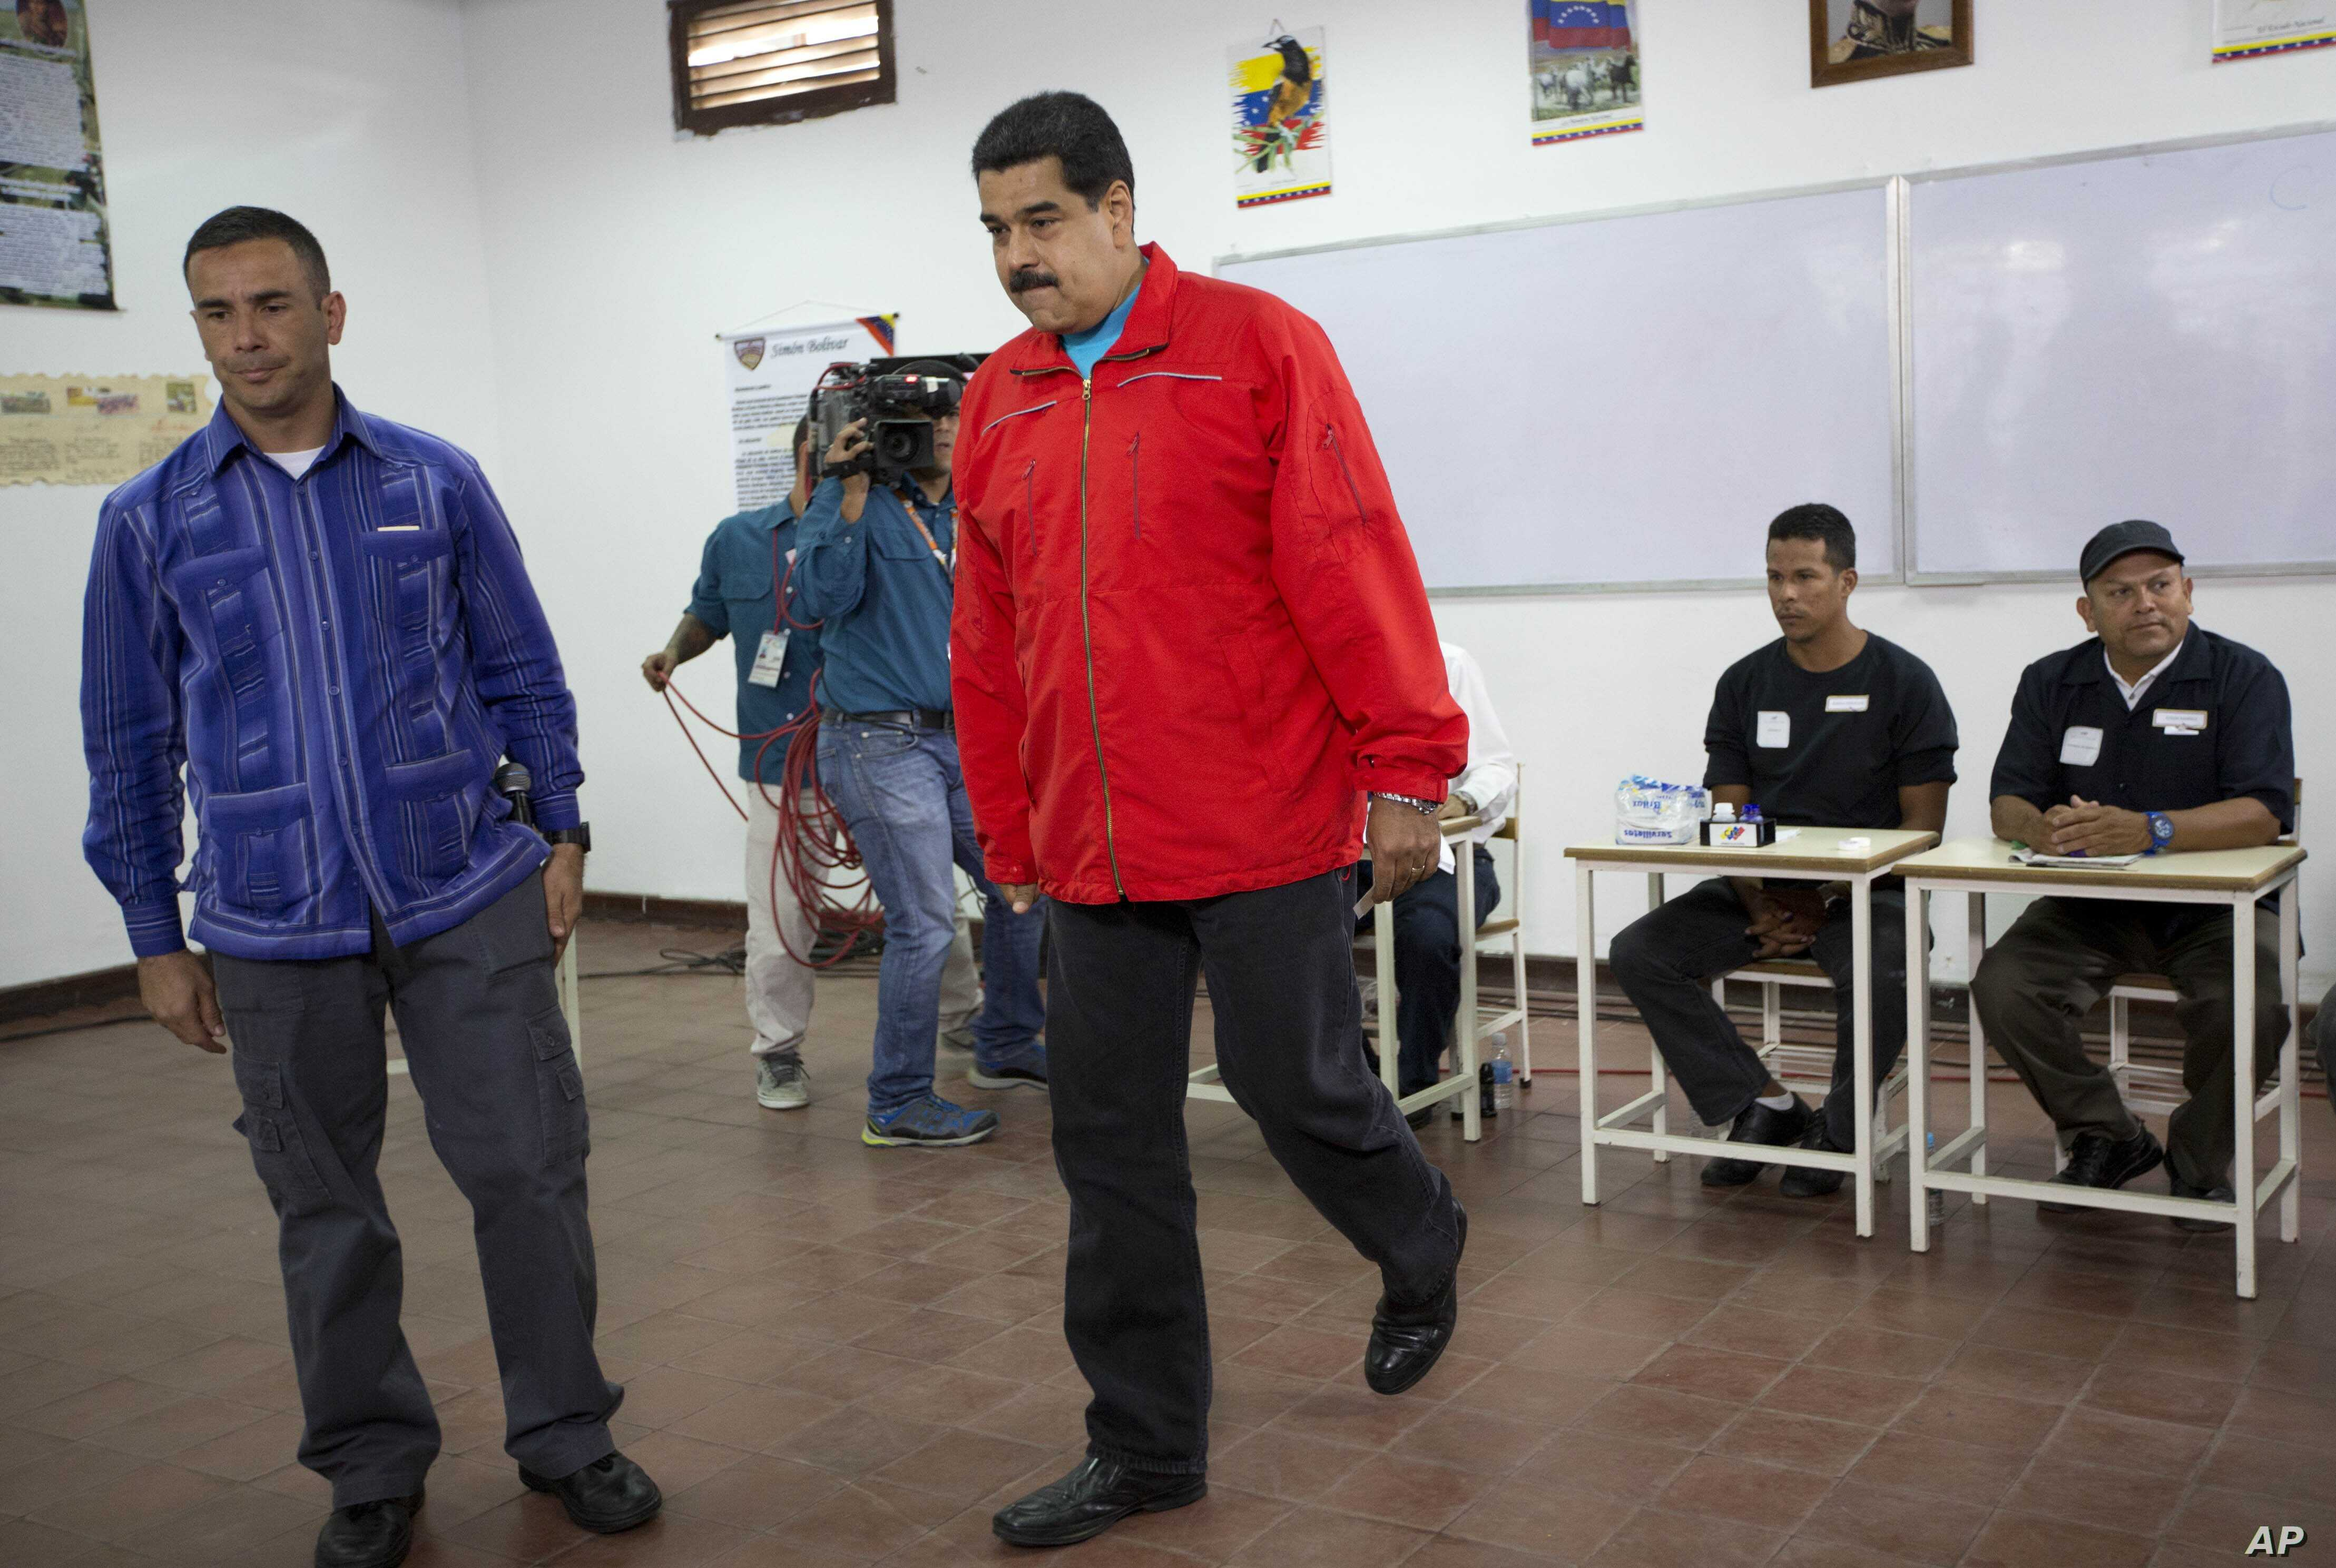 Venezuela's President Nicolas Maduro arrives at a polling station to vote during congressional elections in Caracas, Venezuela, Sunday, Dec. 6, 2015.